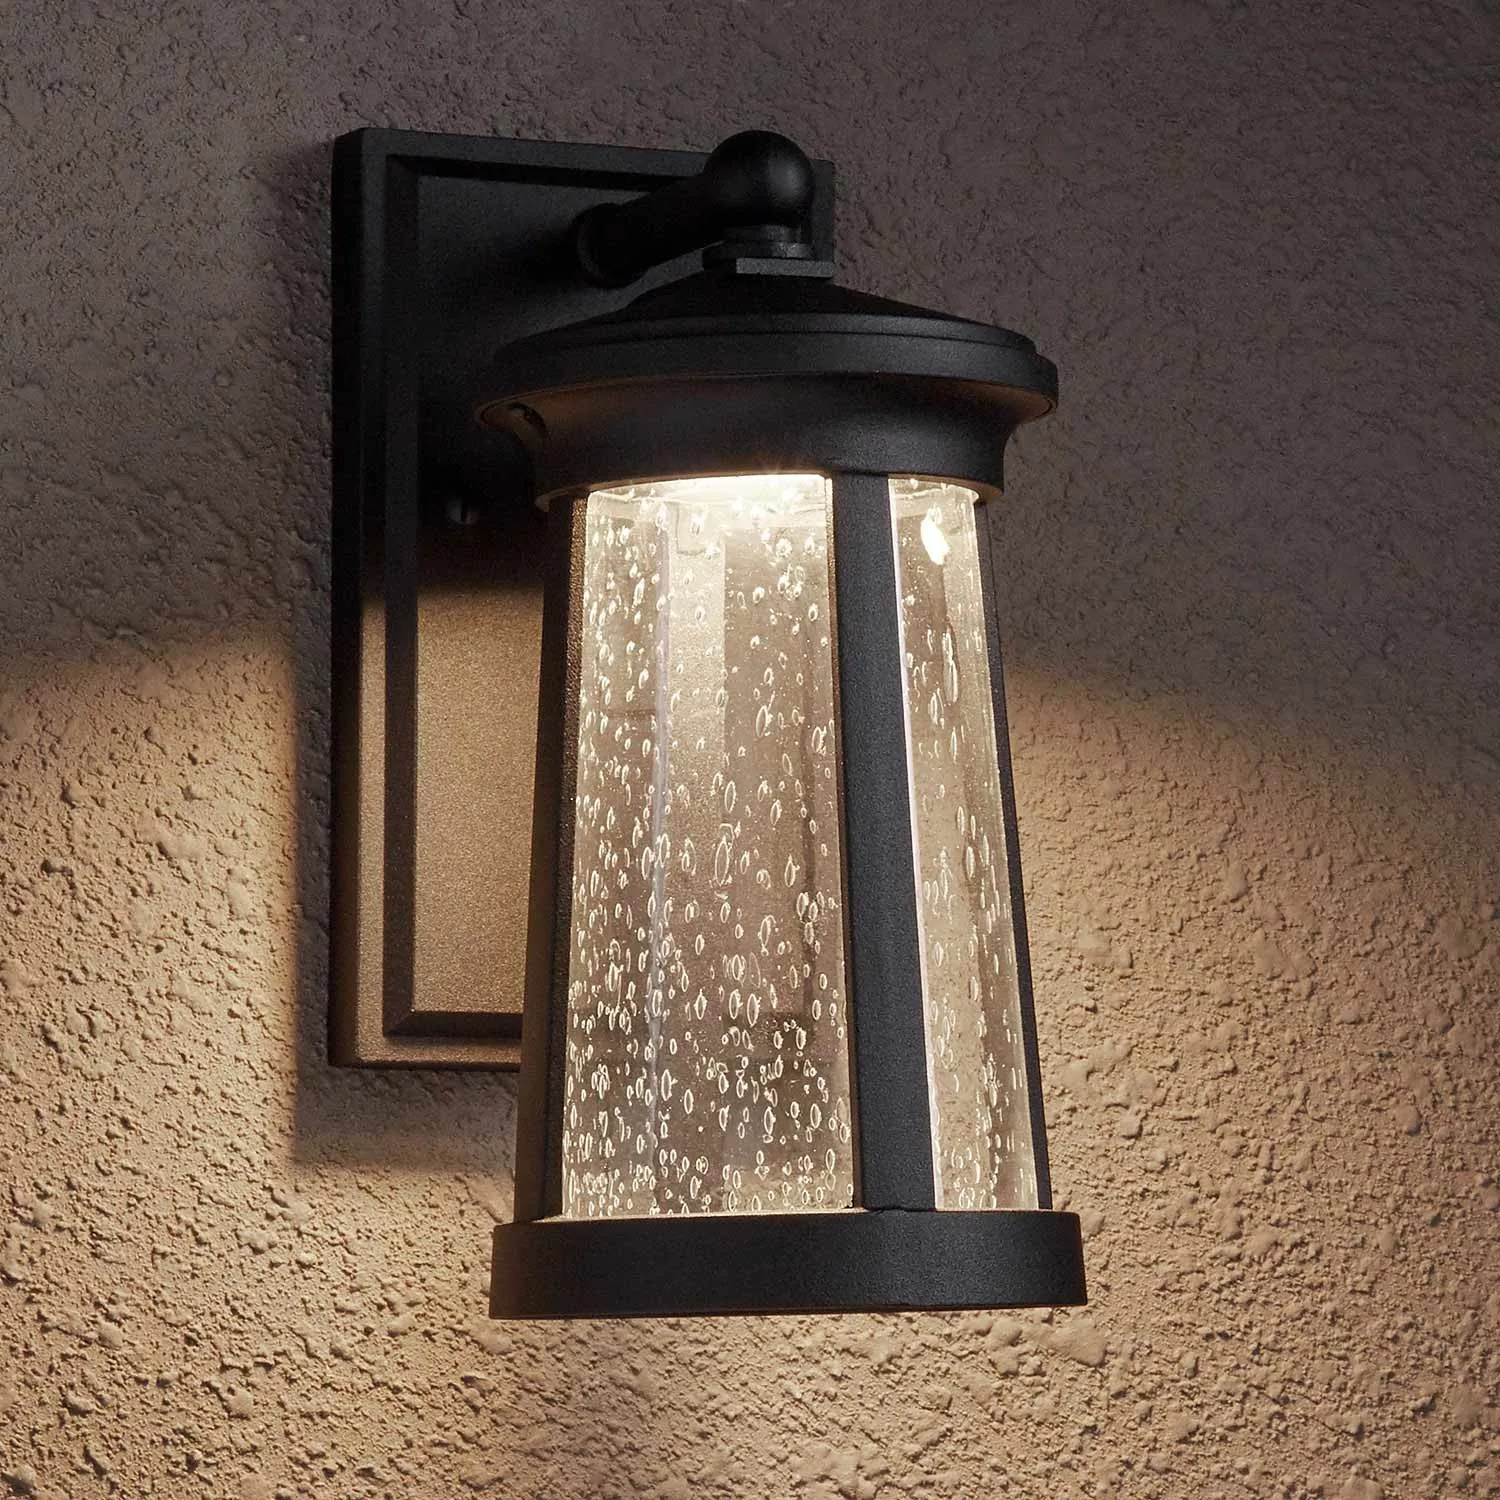 Woodberry Outdoor Entrance LED Wall Sconce - Outdoor ... on Led Sconce Lighting id=73708